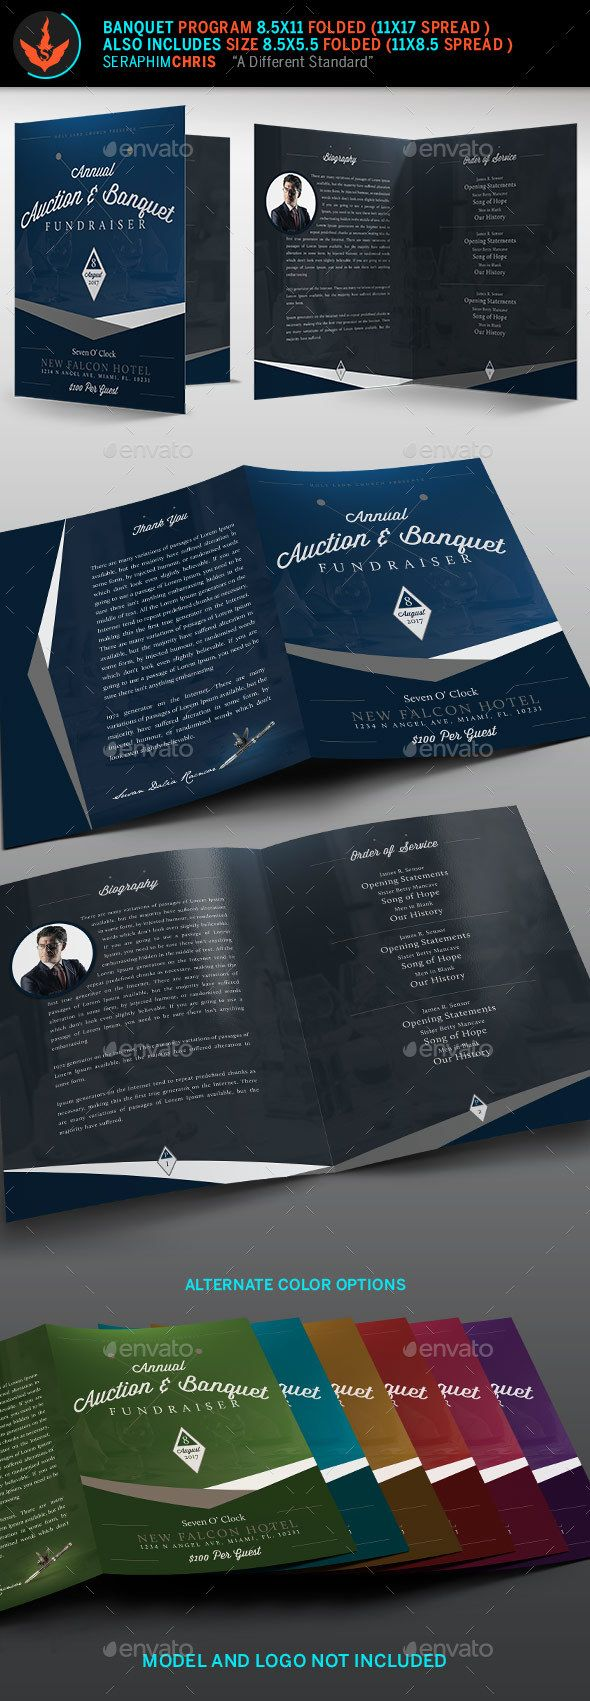 Best YWCA Images On Pinterest Editorial Design Page Layout - Auction brochure template